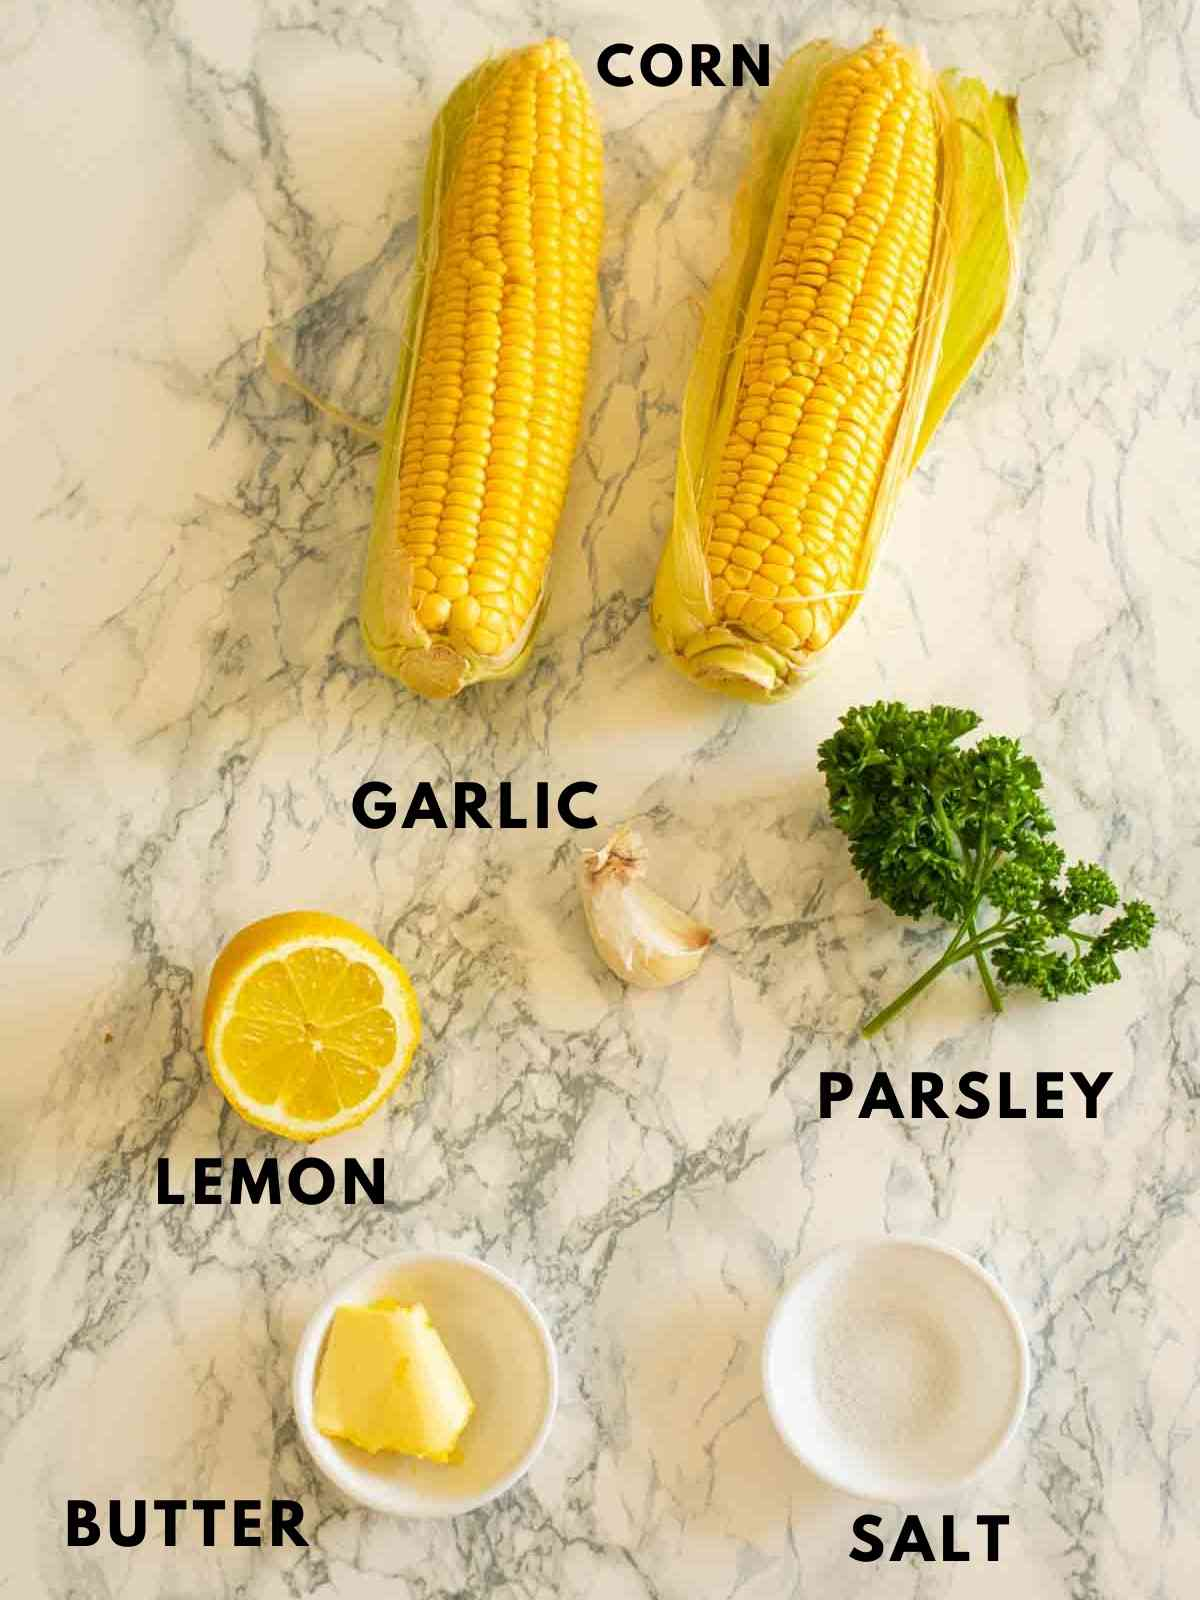 all ingredients for making corn on the cob